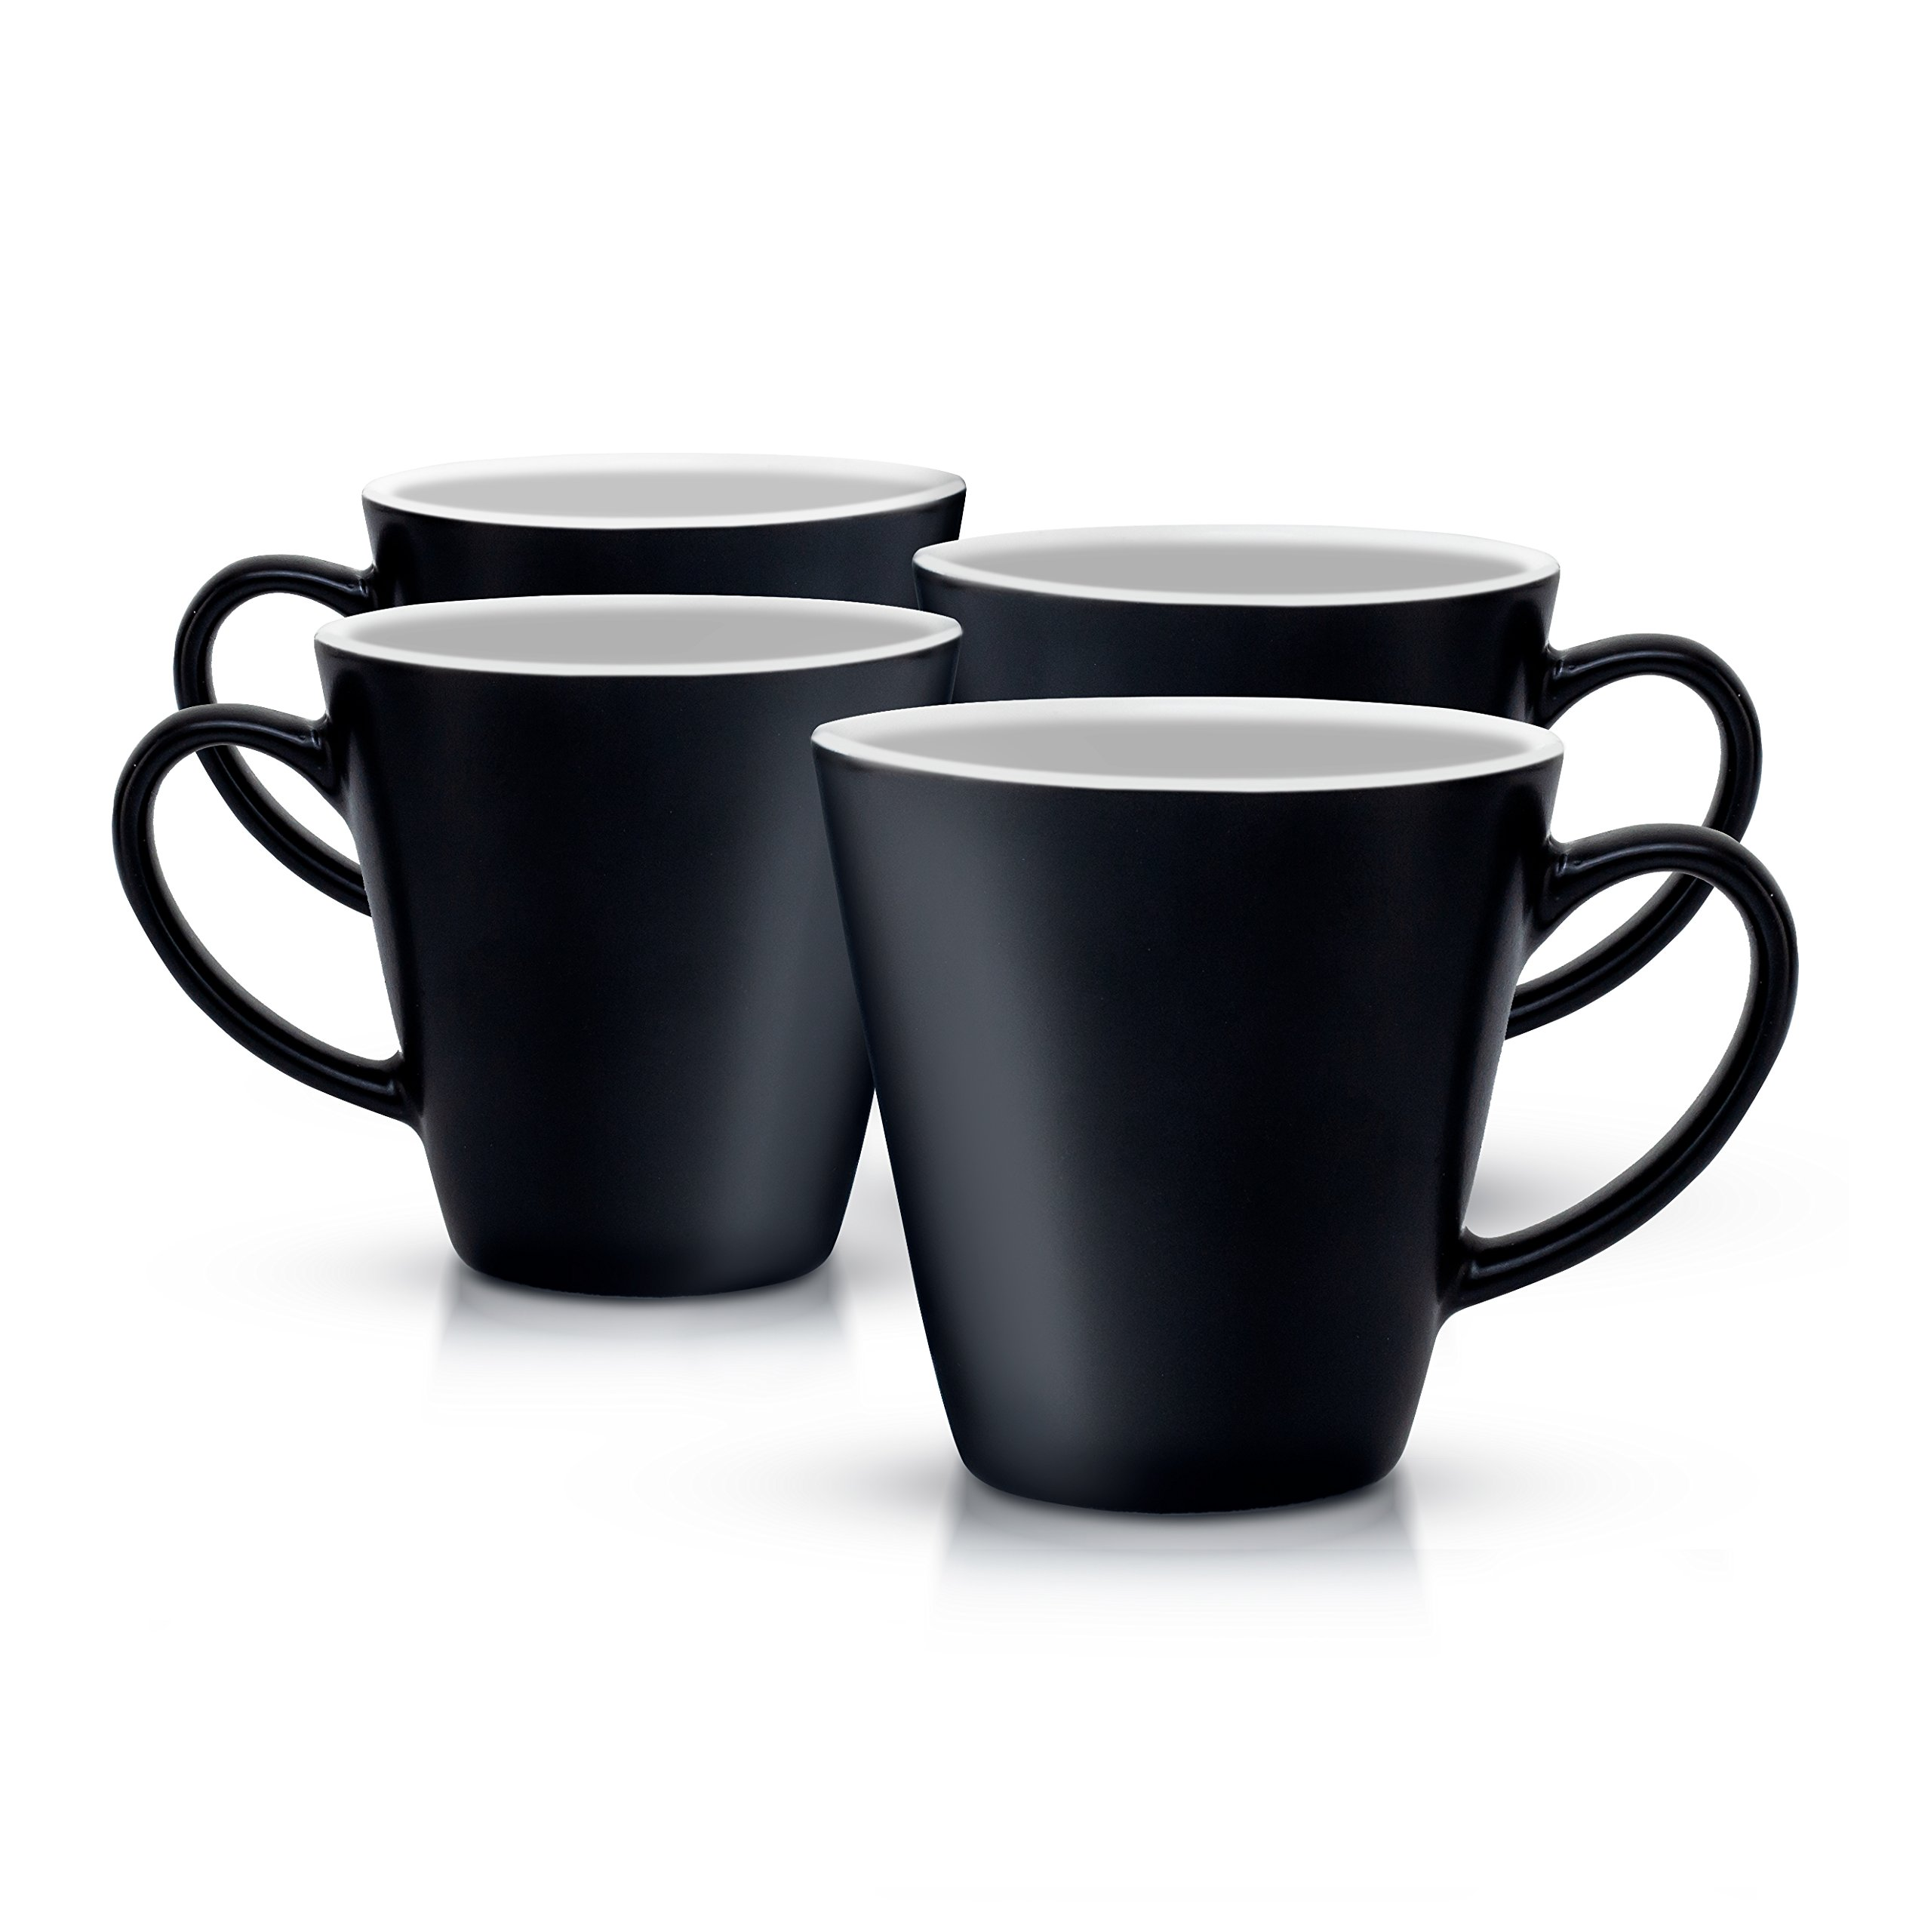 Gifffted Espresso Cups, Porcelain Coffee Shot Cups, 3 Ounce, 90 Milliliter, Ceramic, Black, Set of 4